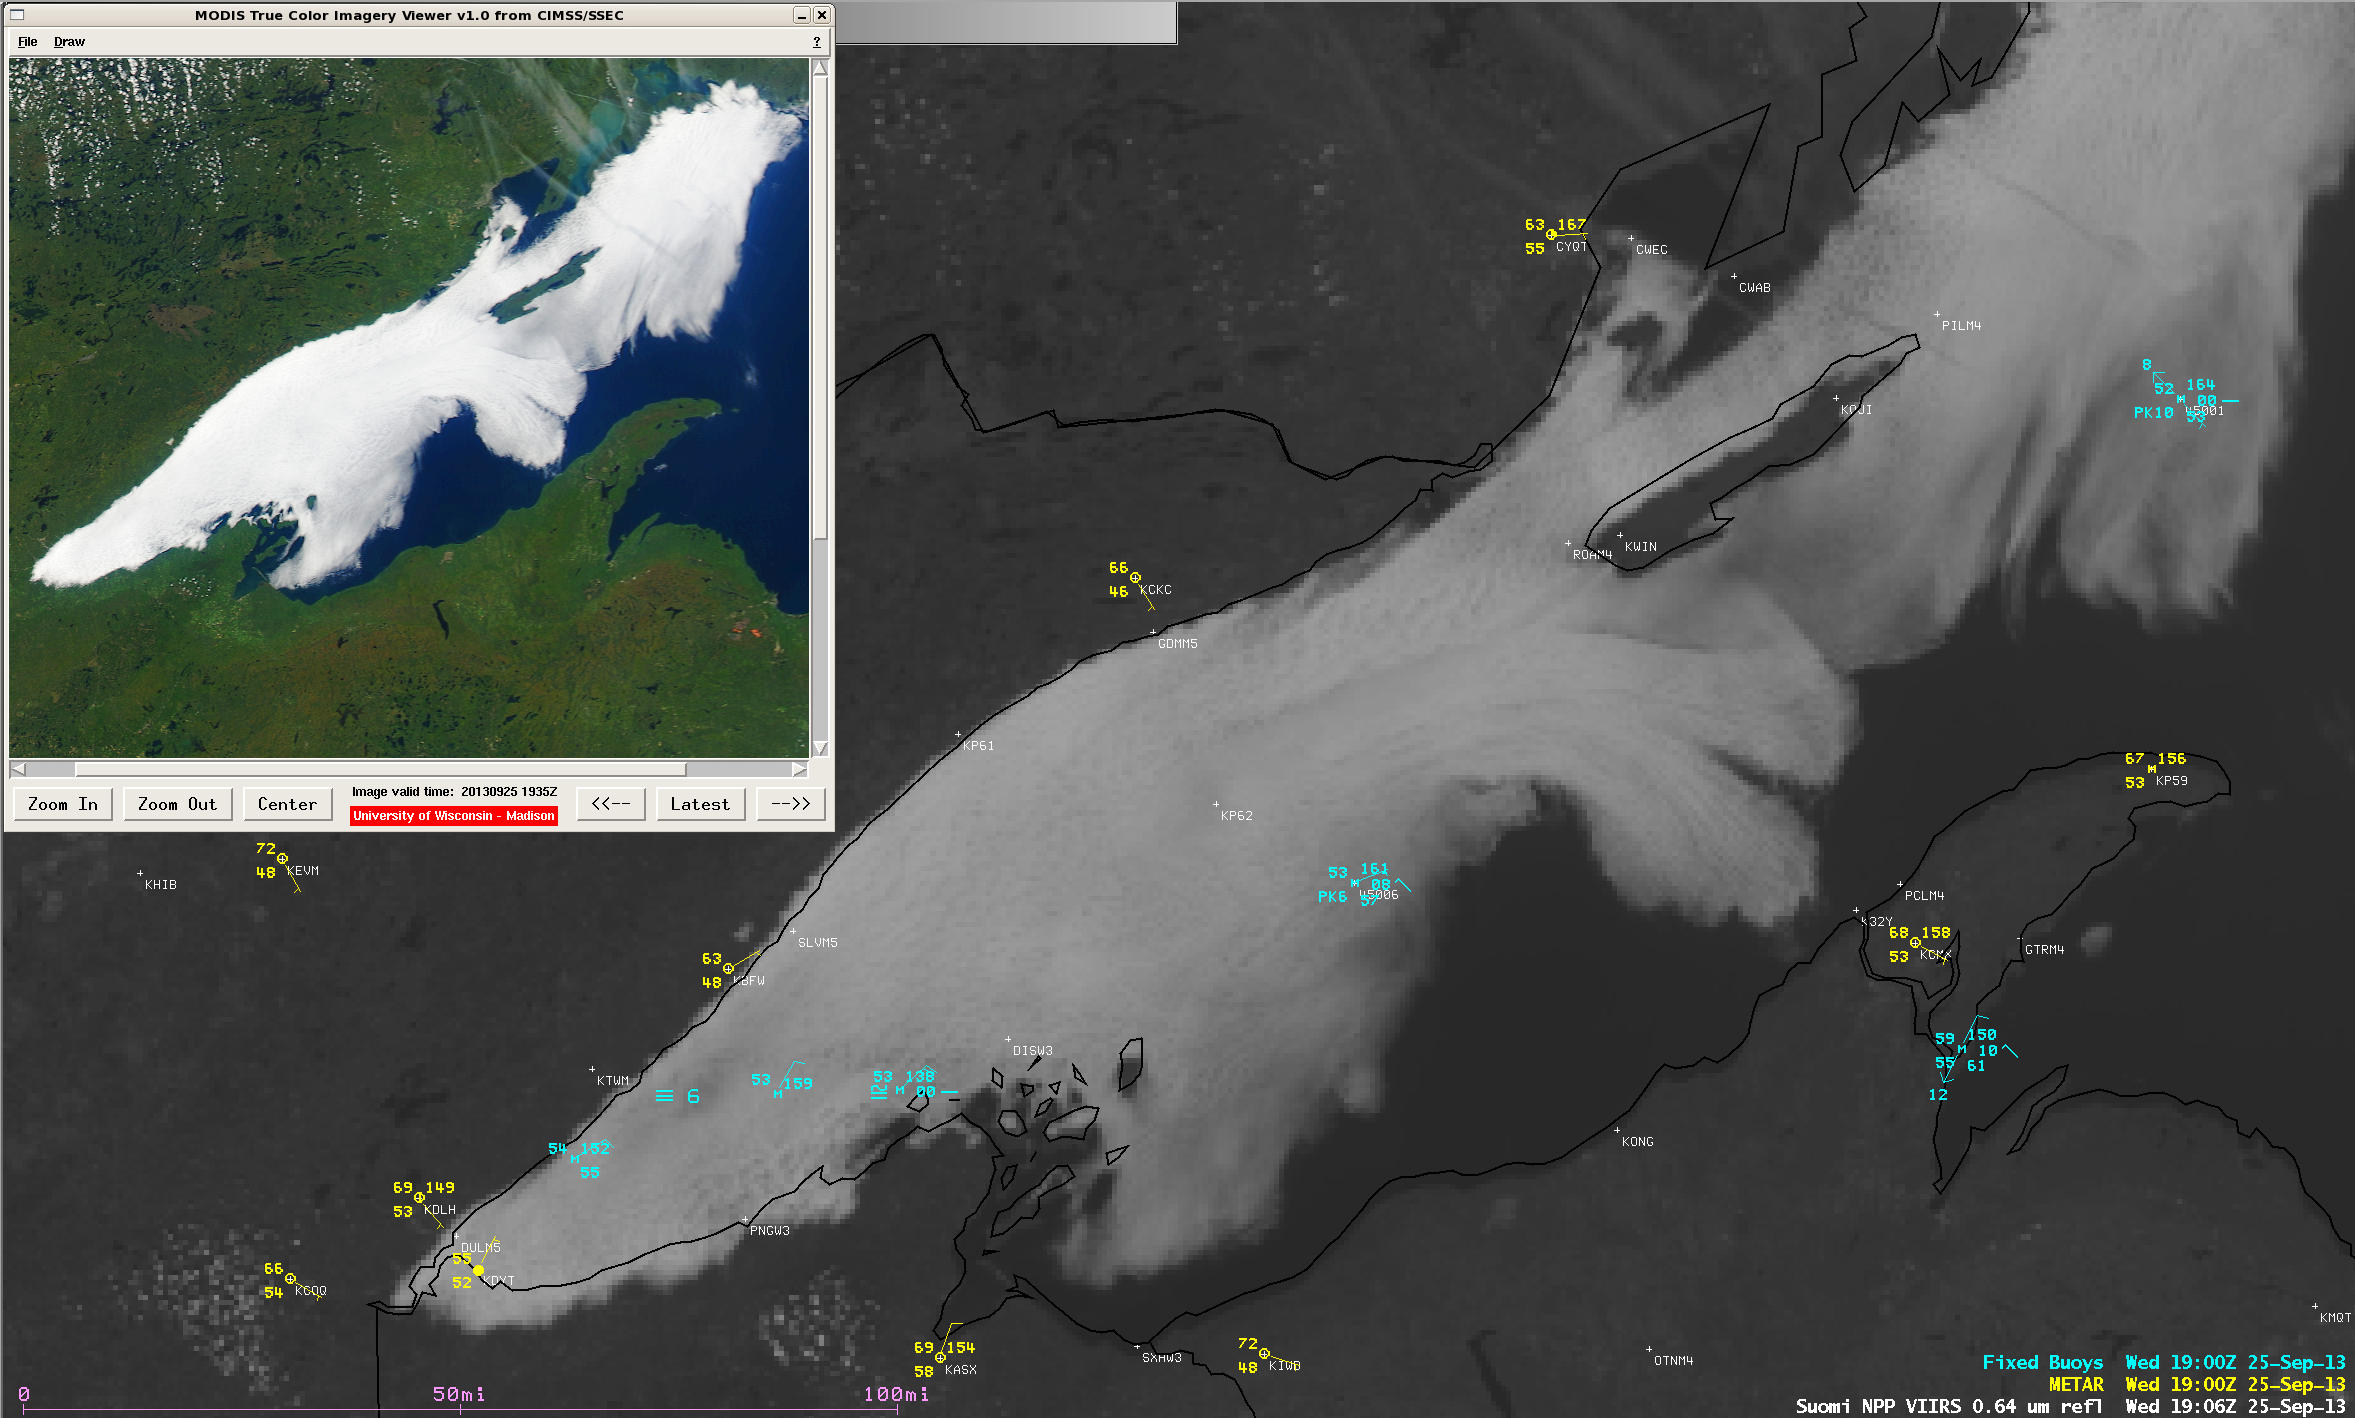 Suomi NPP VIIRS 0.64 µm visible channel image, with MODIS true-color image (upper left corner)